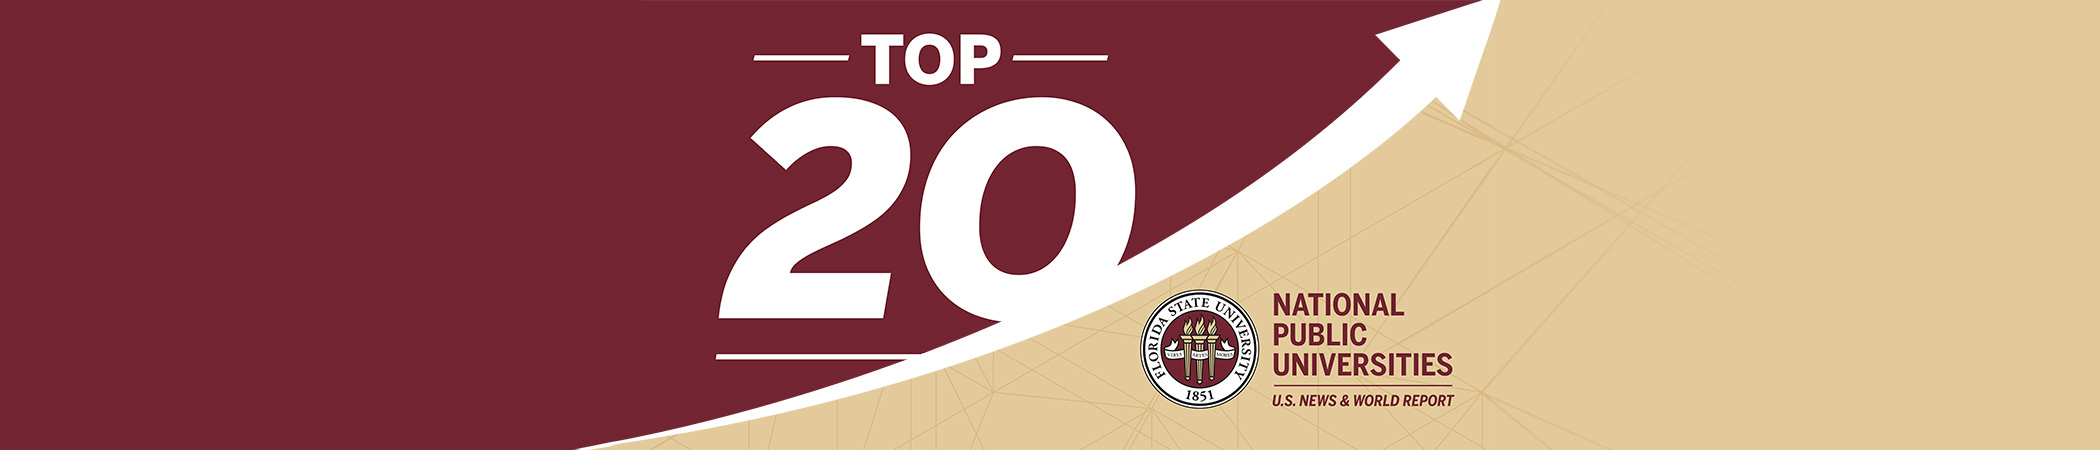 Top 20 of National Public Universities in U.S. News & World Report